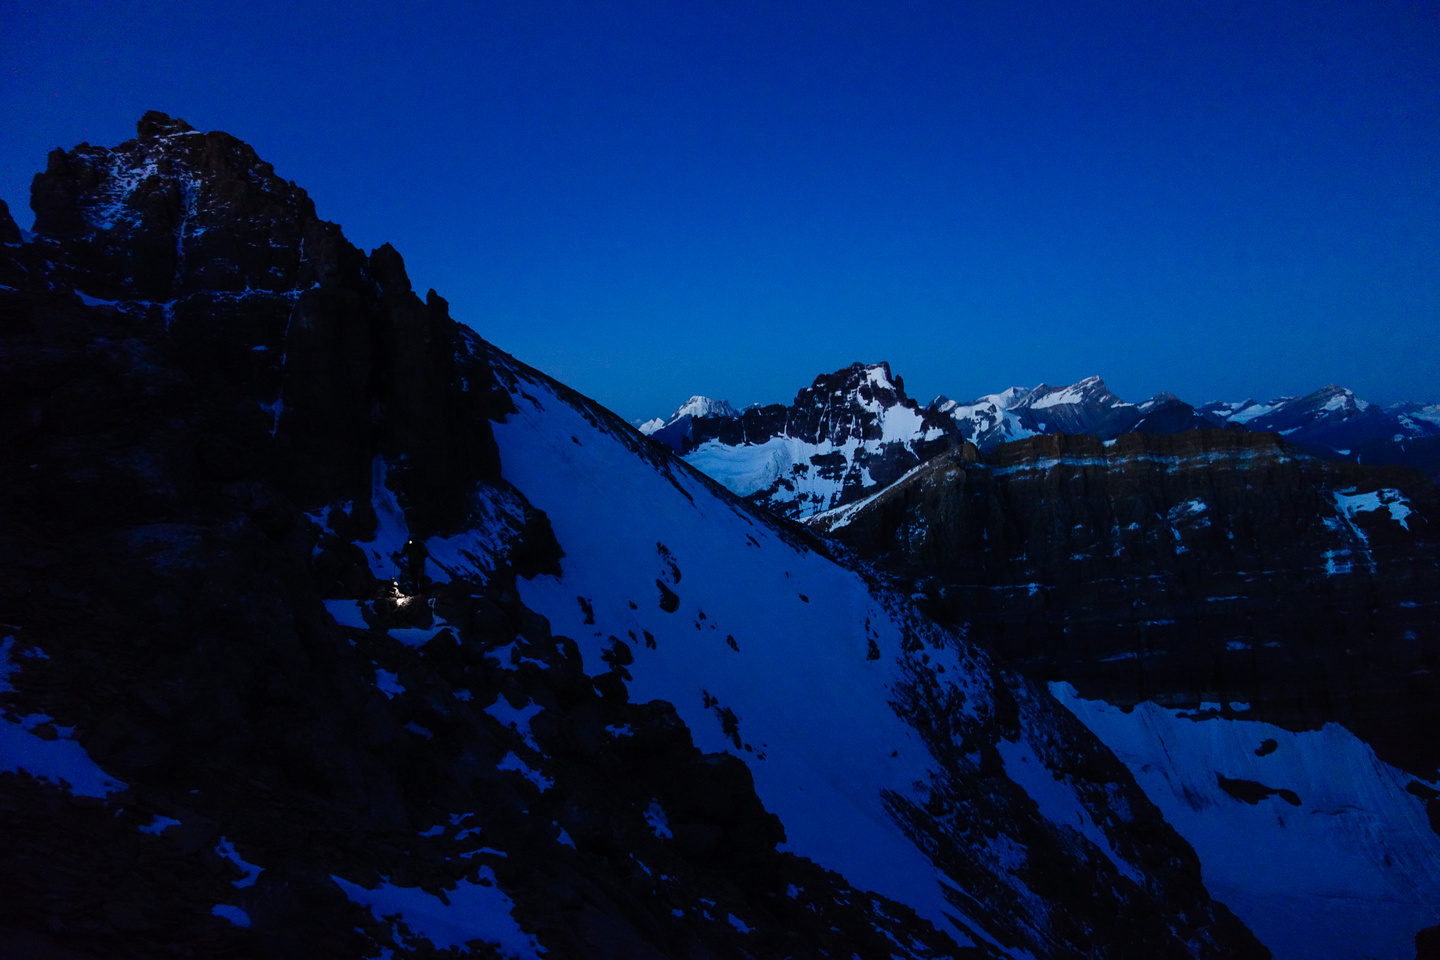 It's still very dark as we make our way up the first scree slope.